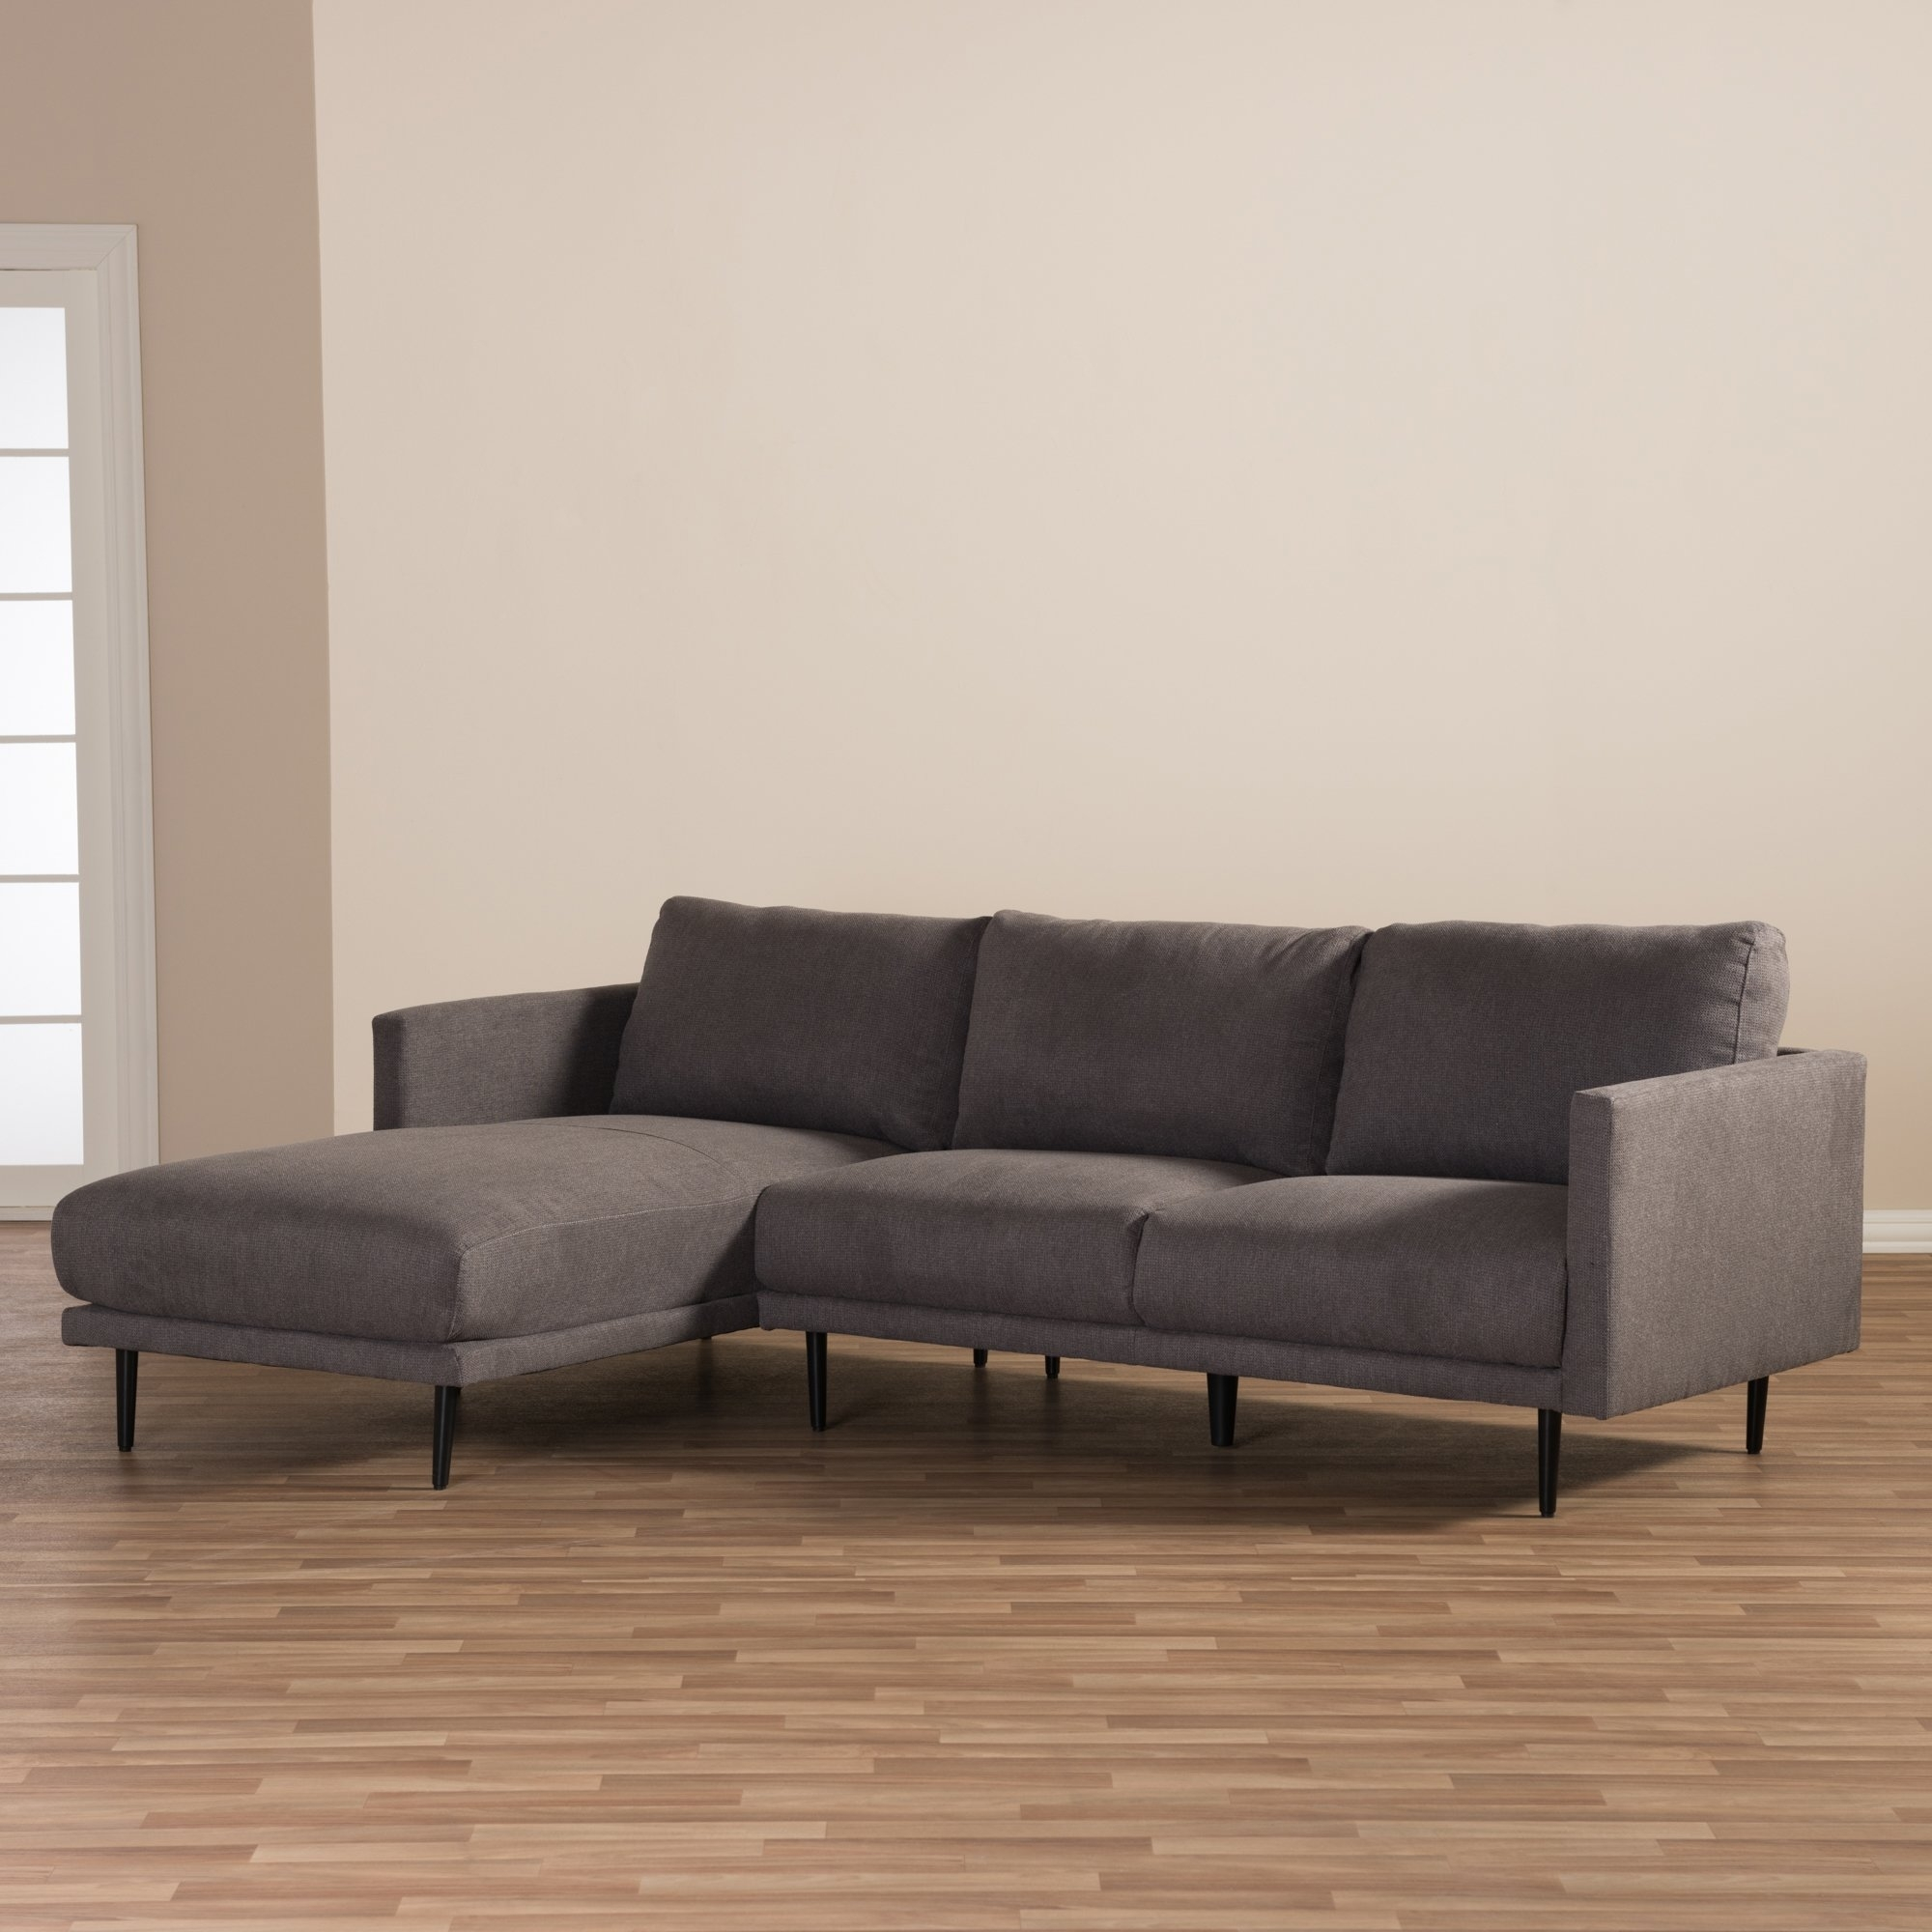 leather sectional sofa chicago simmons reviews 10 inspirations sofas at ideas